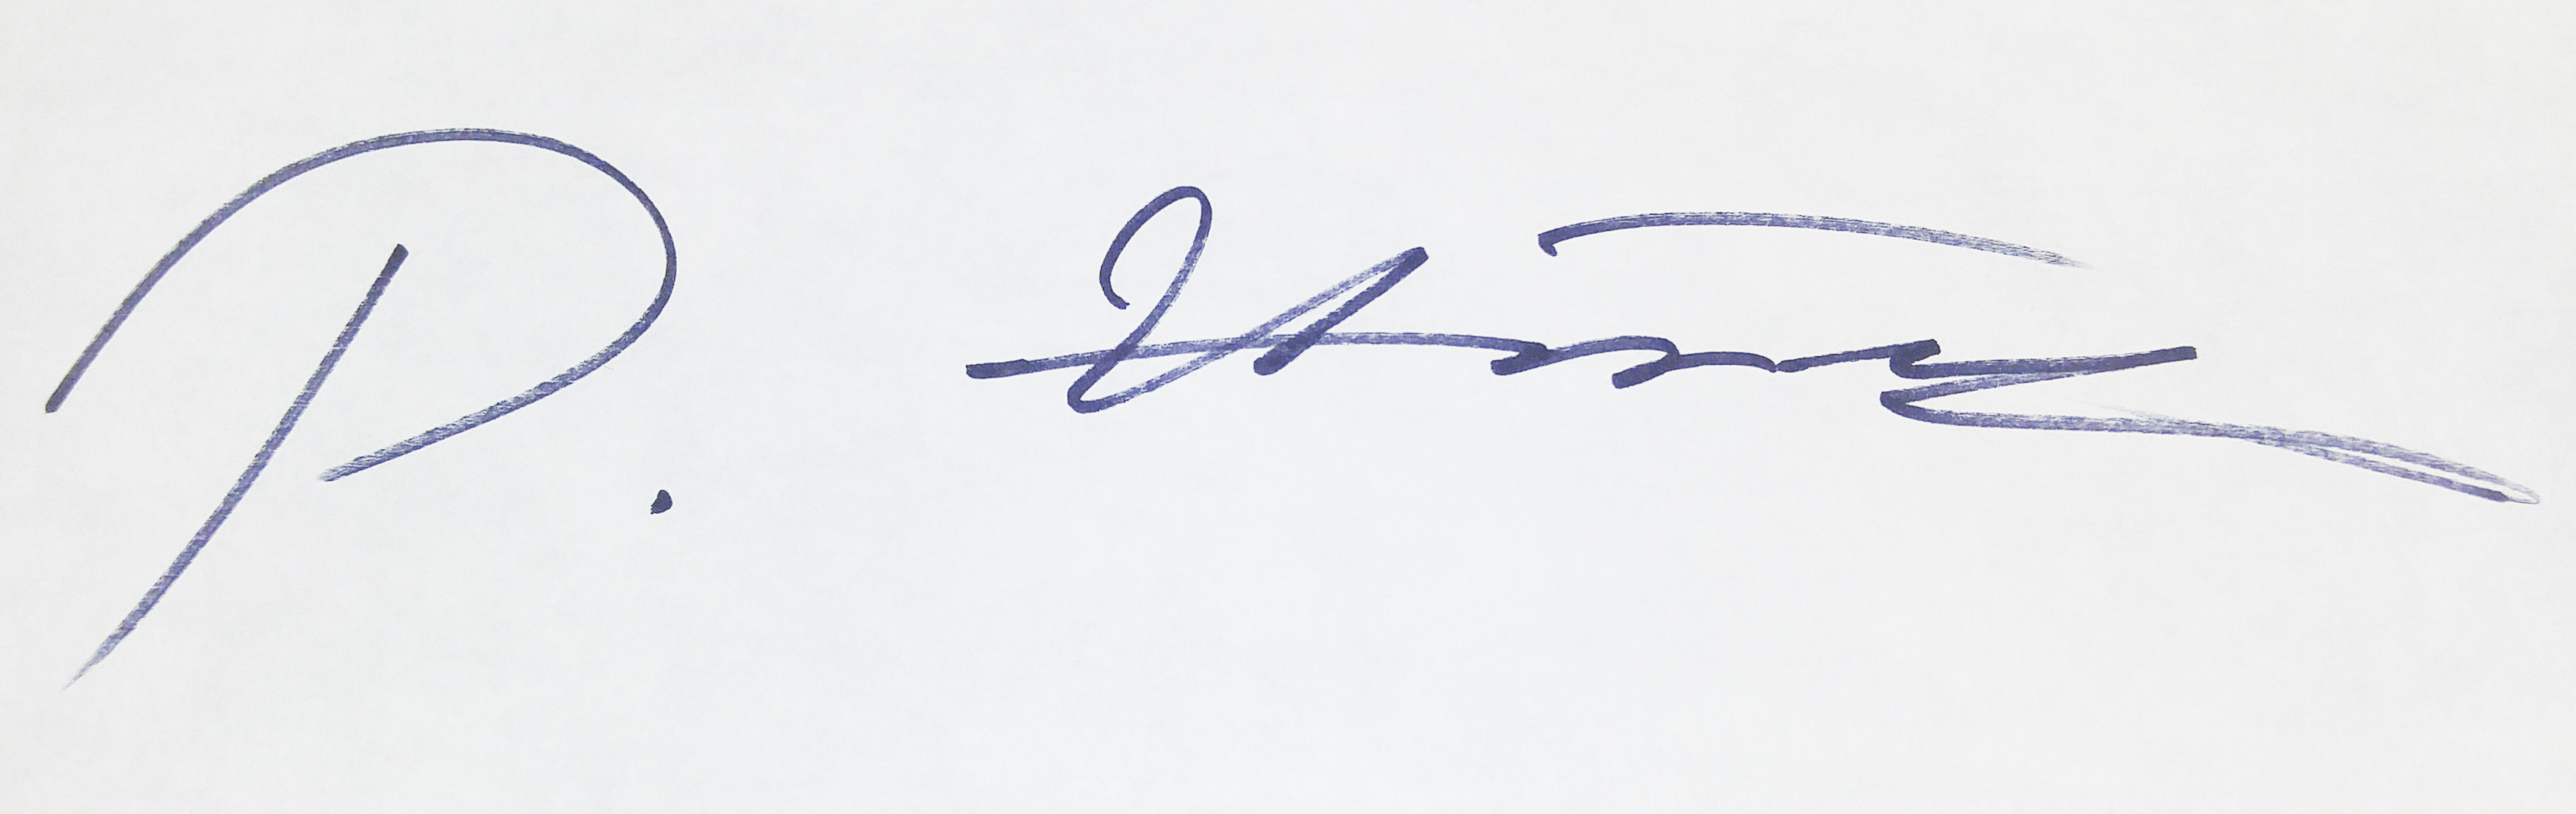 peggy H. Lee's Signature